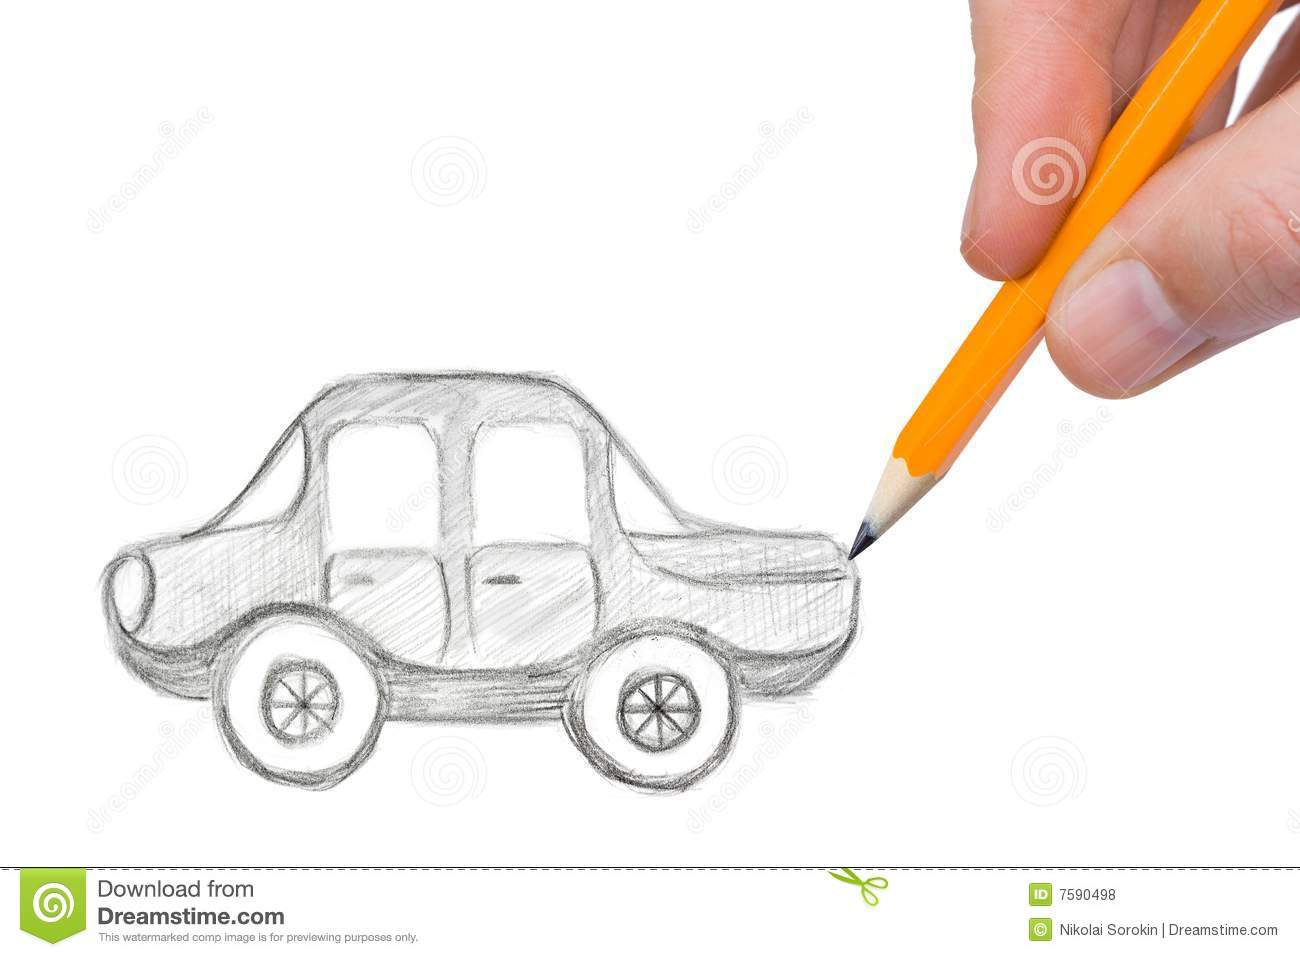 Hand drawing car stock photo. Image of background, sign - 7590498